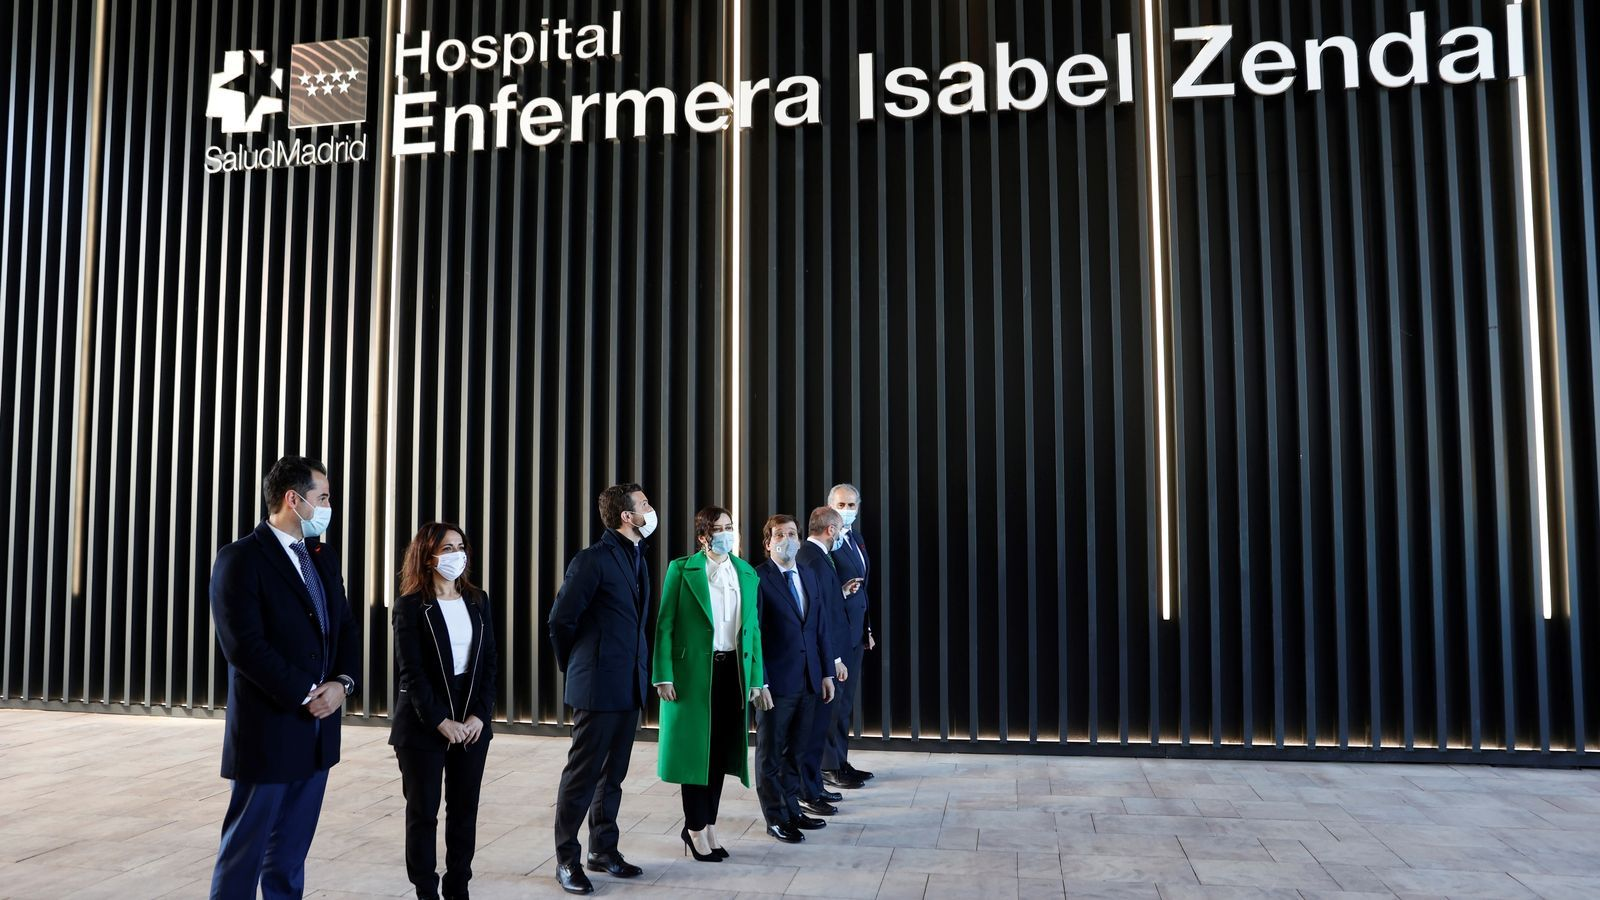 Madrid inaugurates new hospital amidst crowds and protestors